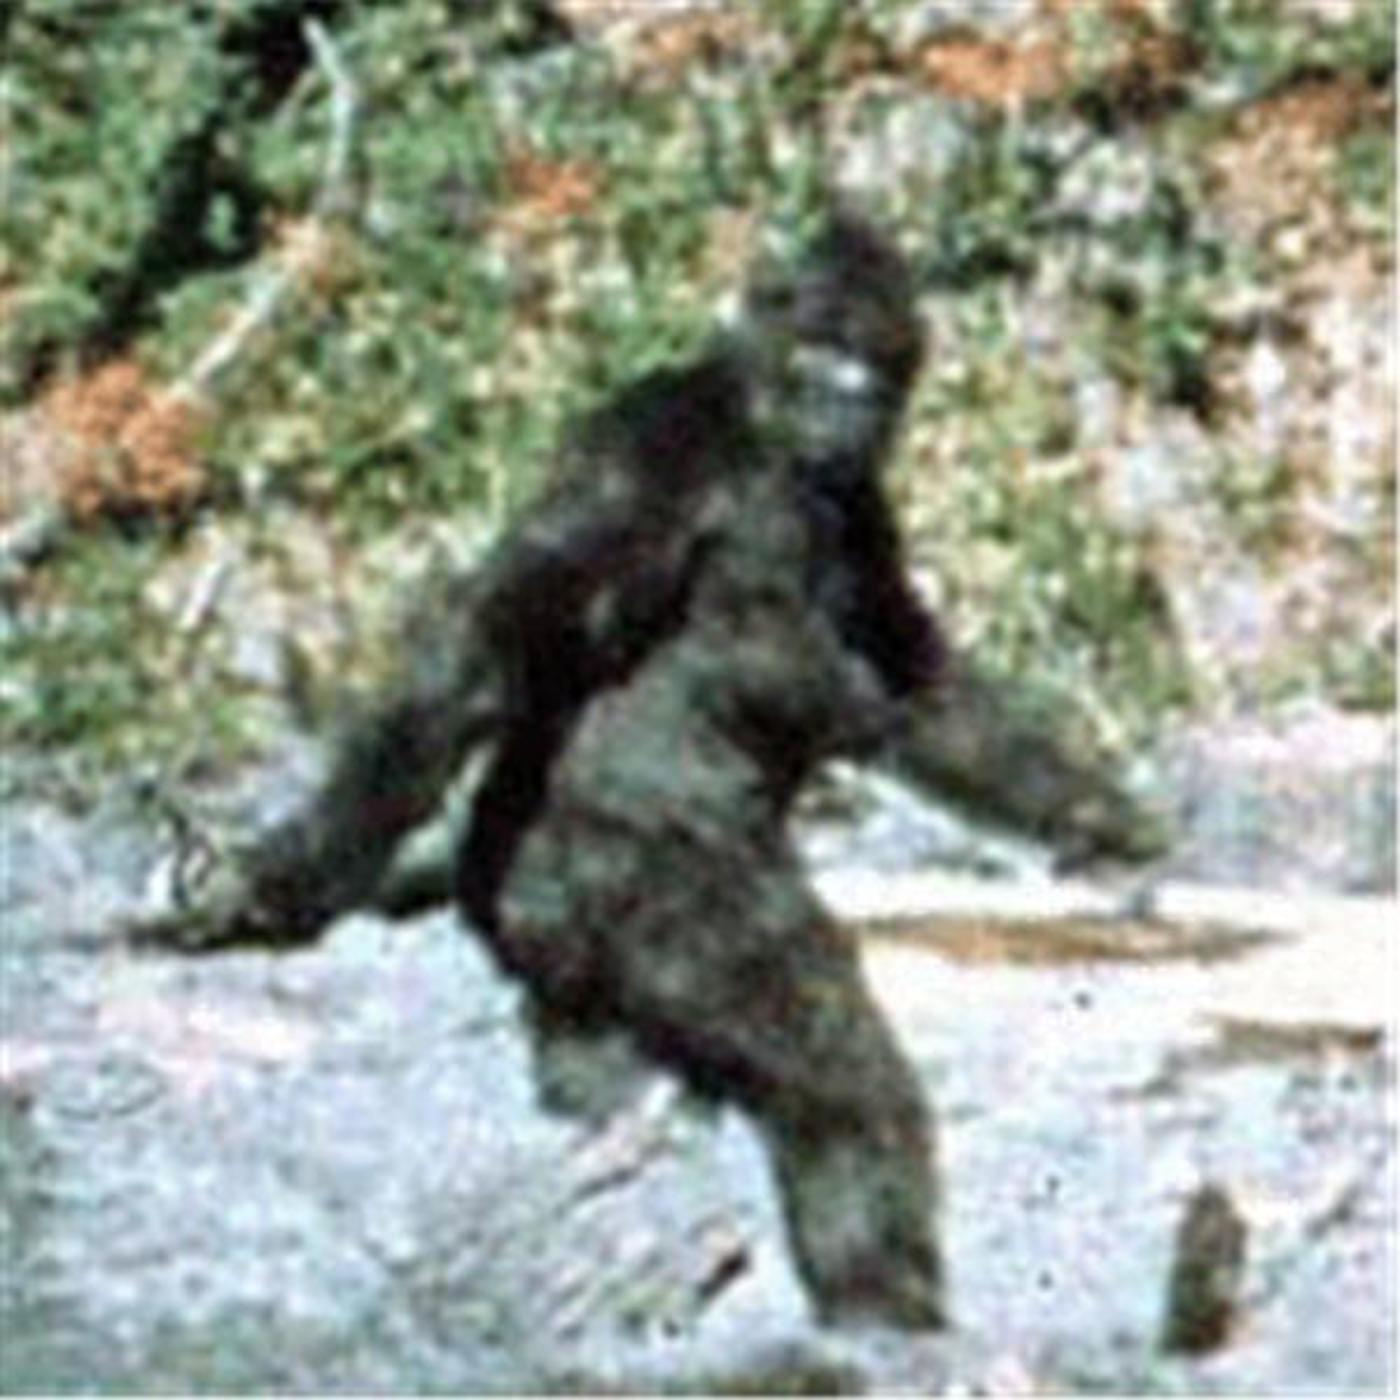 Bigfoot, Ground Zero